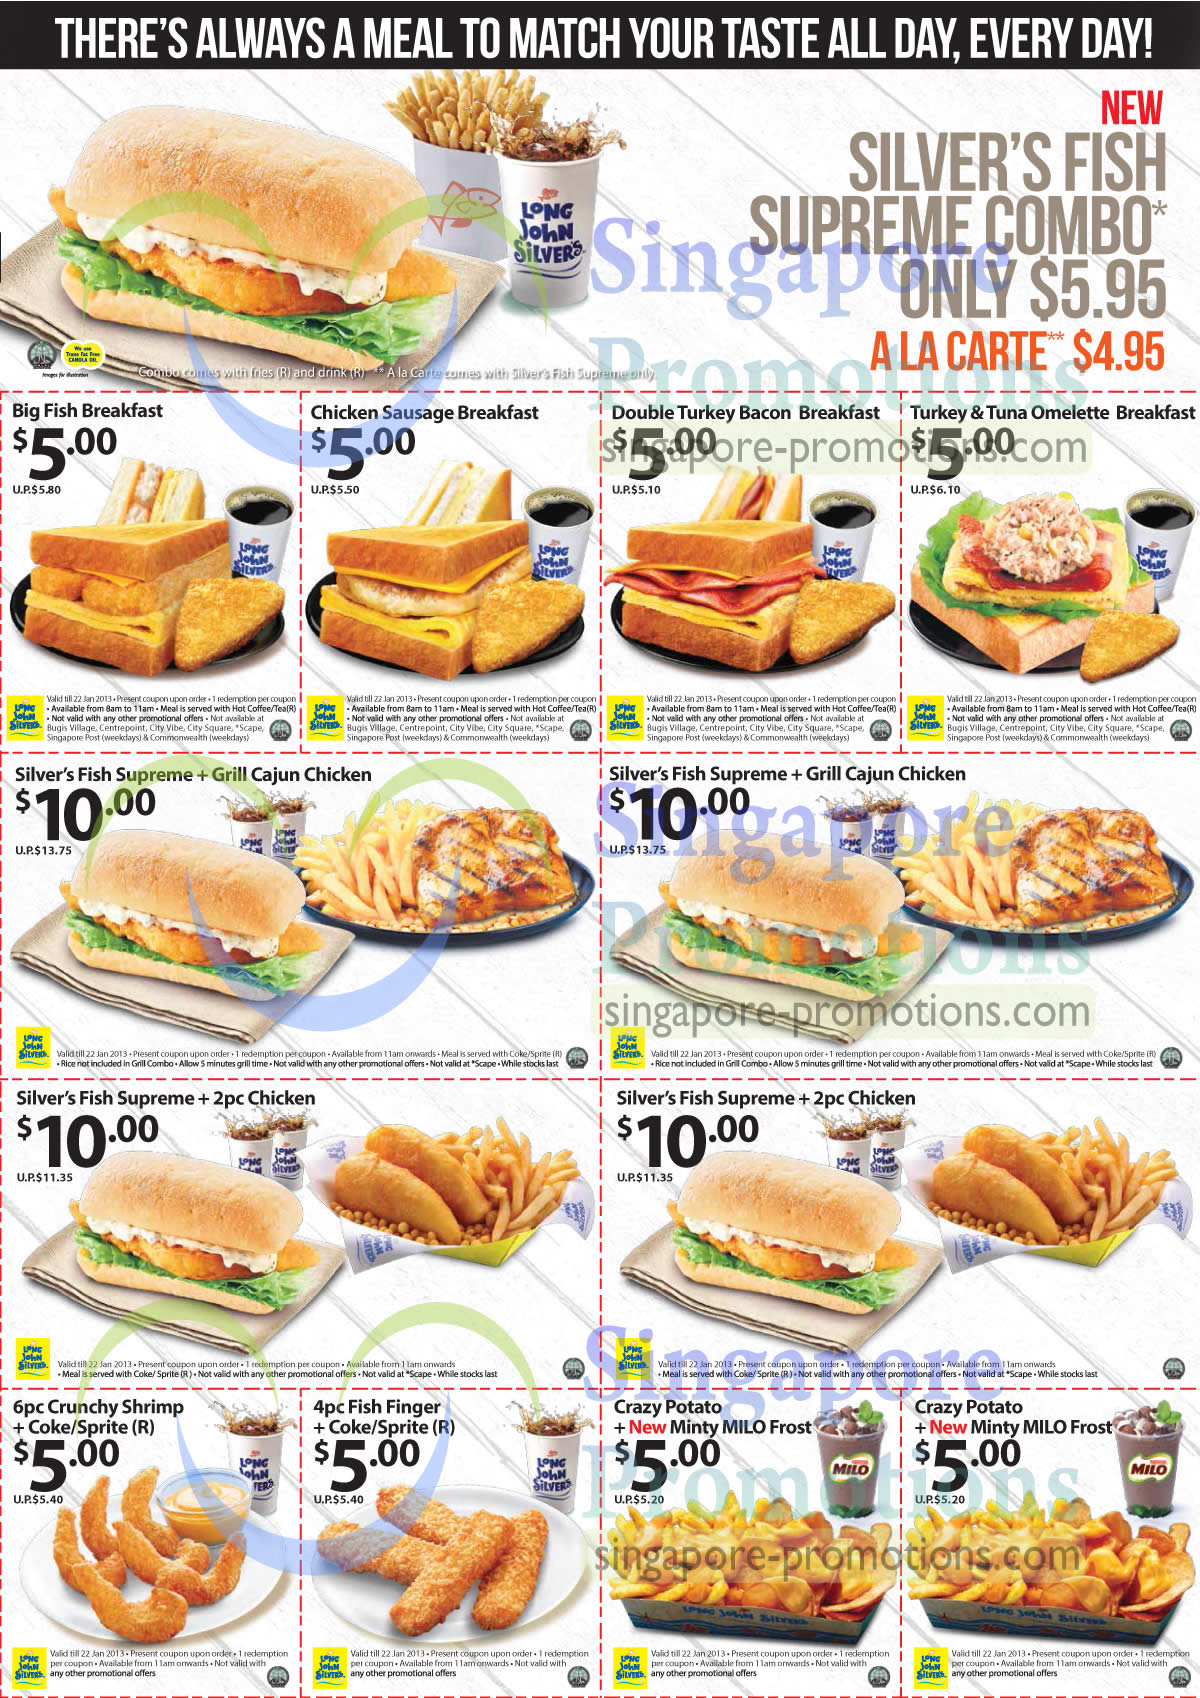 image regarding Long John Silver's Printable Coupons named Ljs discount coupons printable : Racv powering courses coupon codes